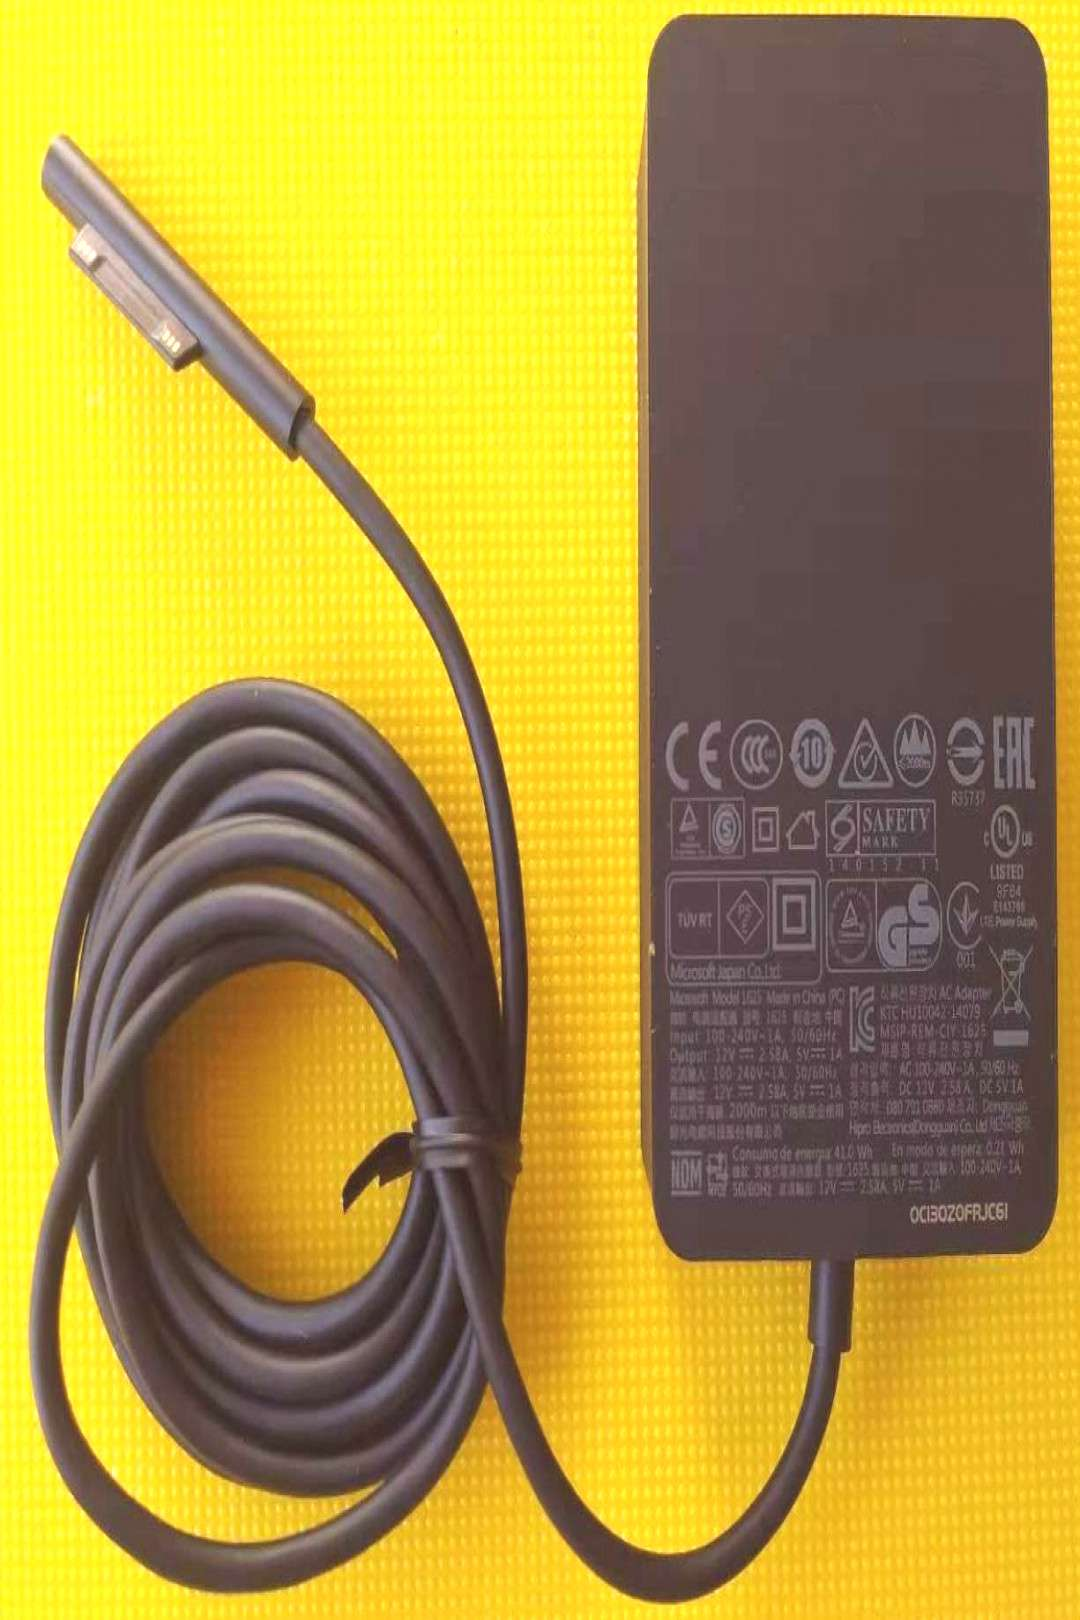 36W 12V 2.58A OEM Microsoft A1625 AC Adapter/Charger for Surface Pro 3/4 Tablet - Microsoft - Idea